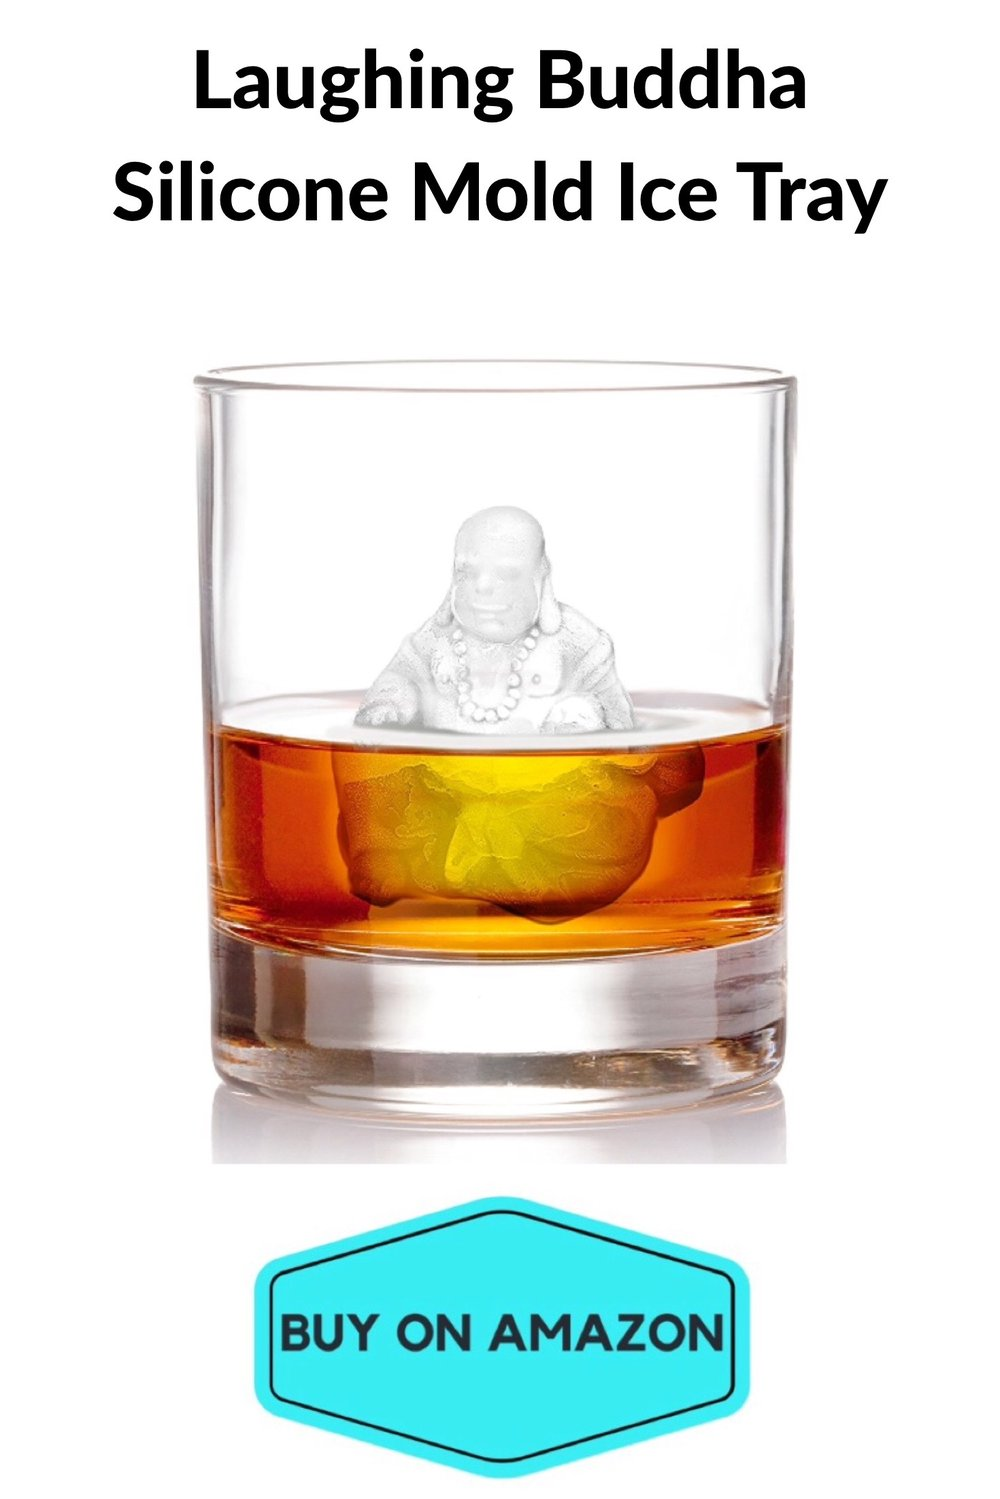 Laughing Buddha Silicone Mold Ice Tray